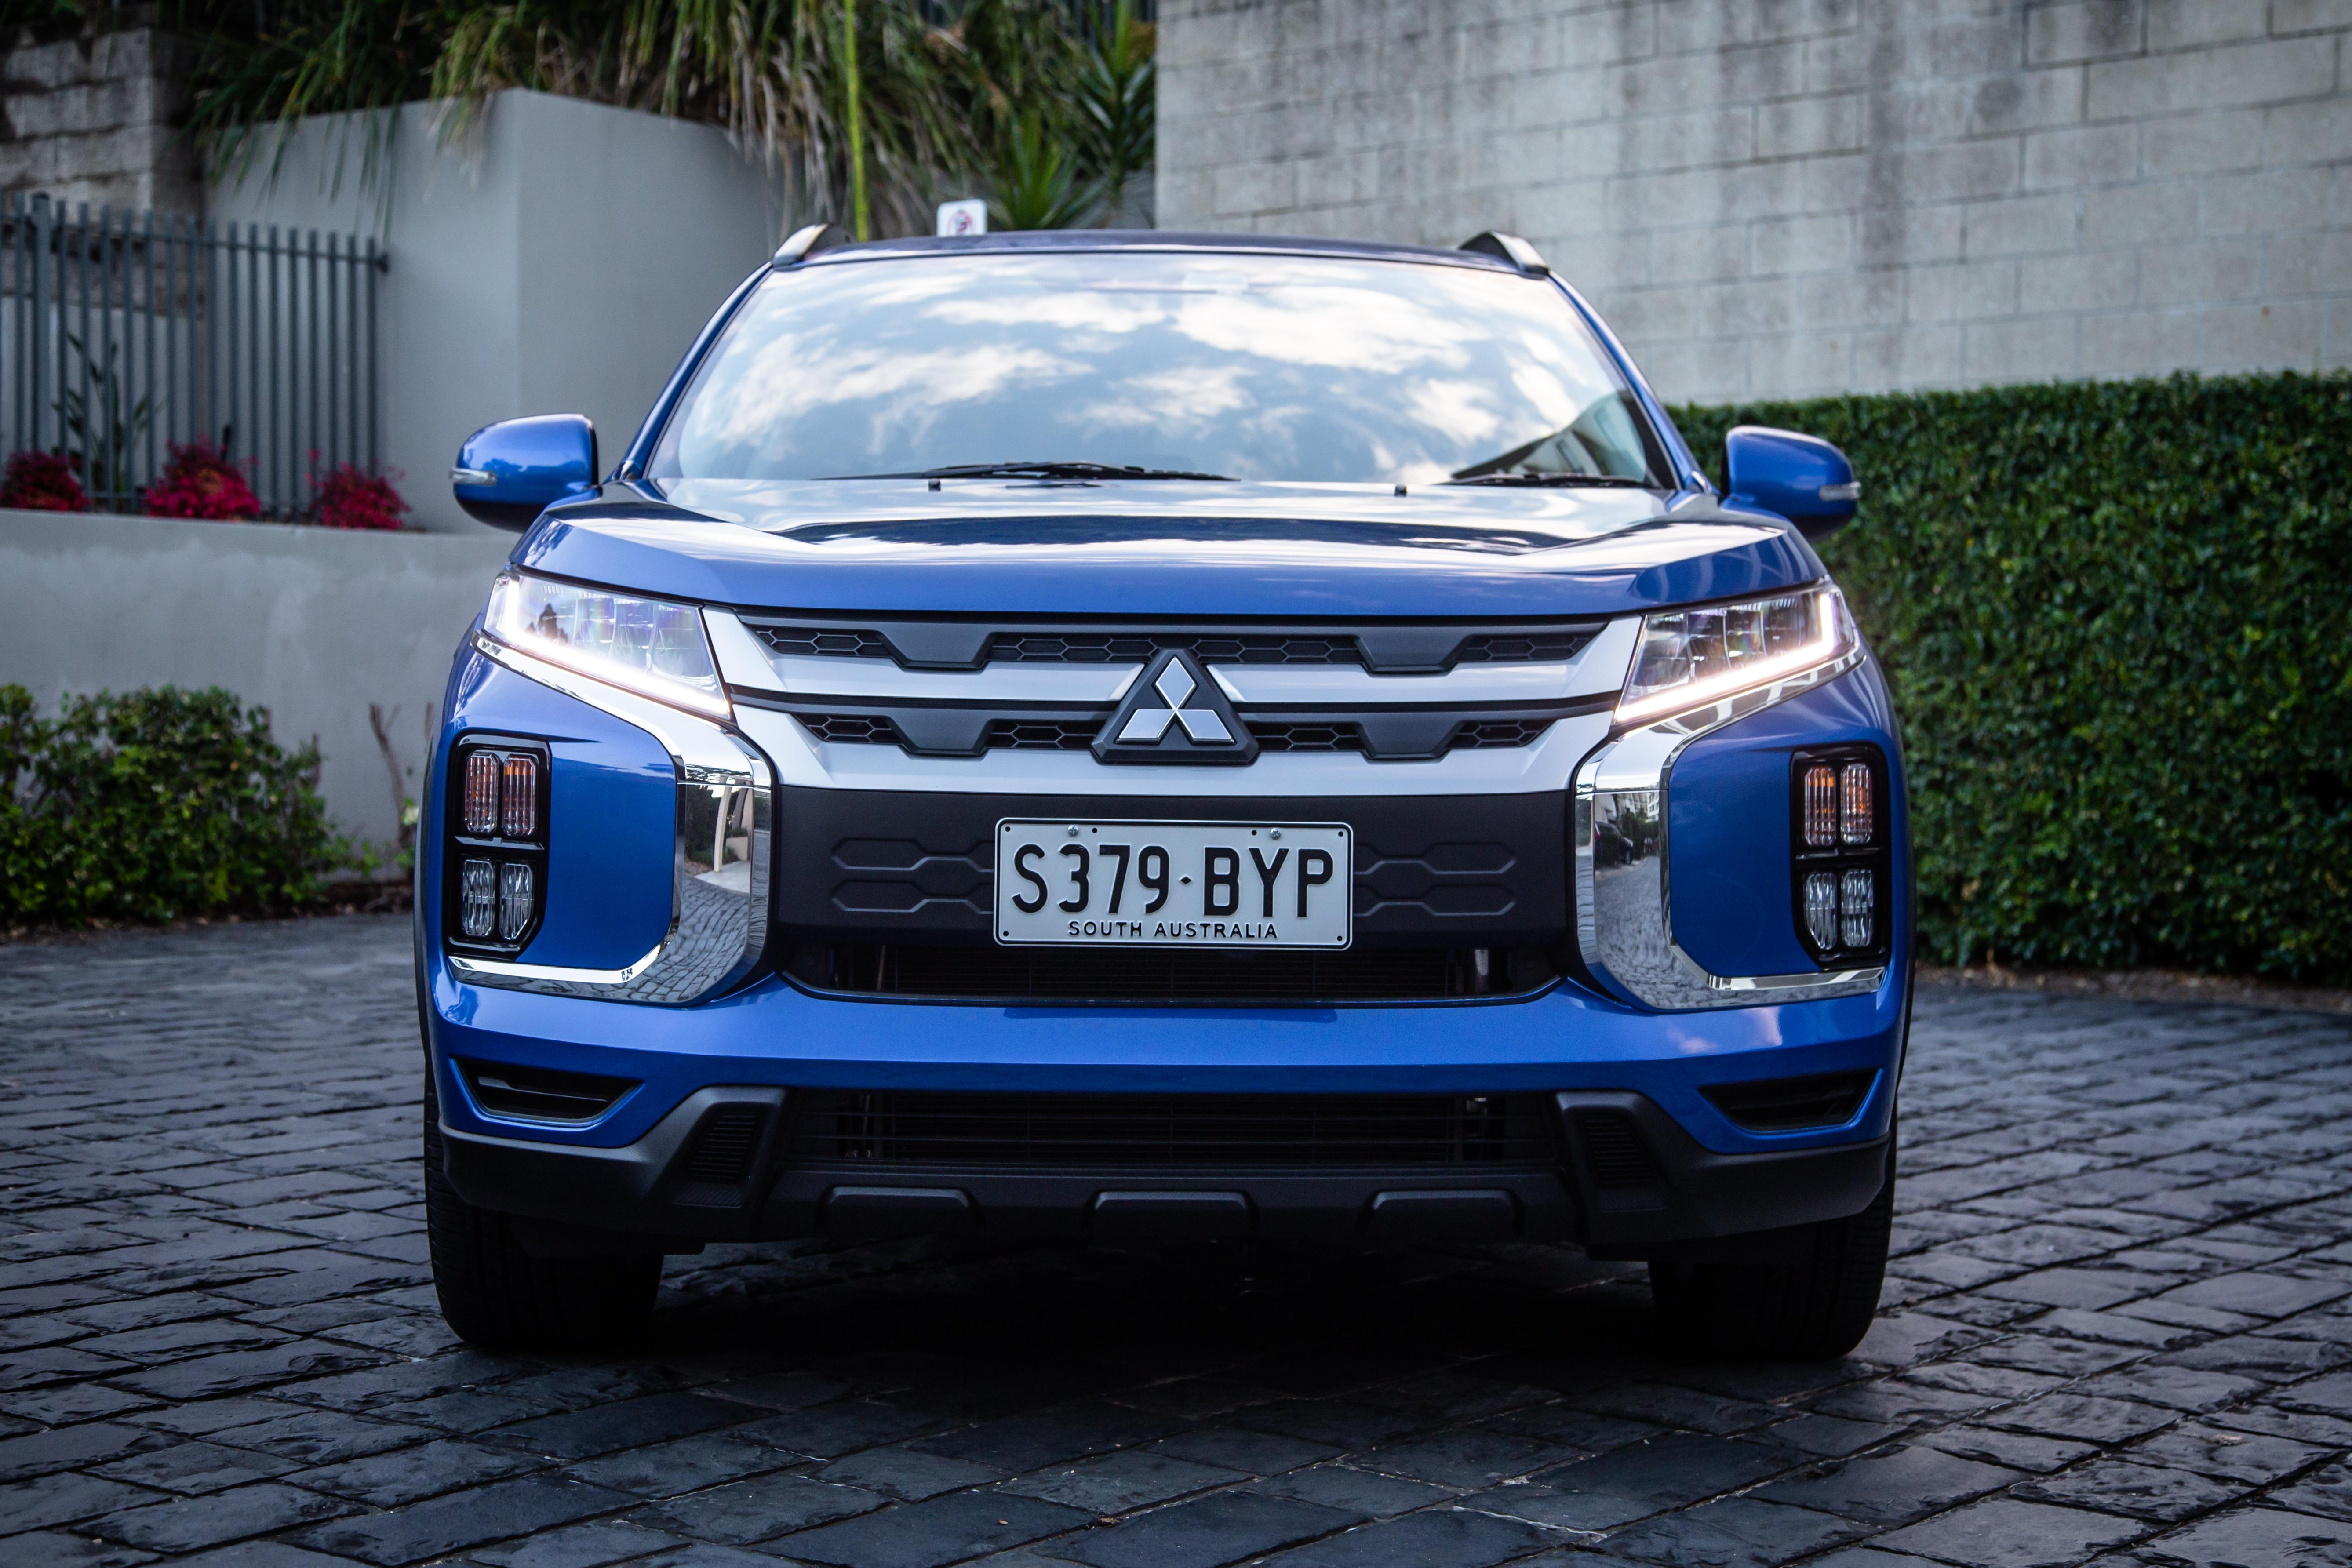 Mitsubishi v MG v Haval: Which cheap SUV is best-specced?